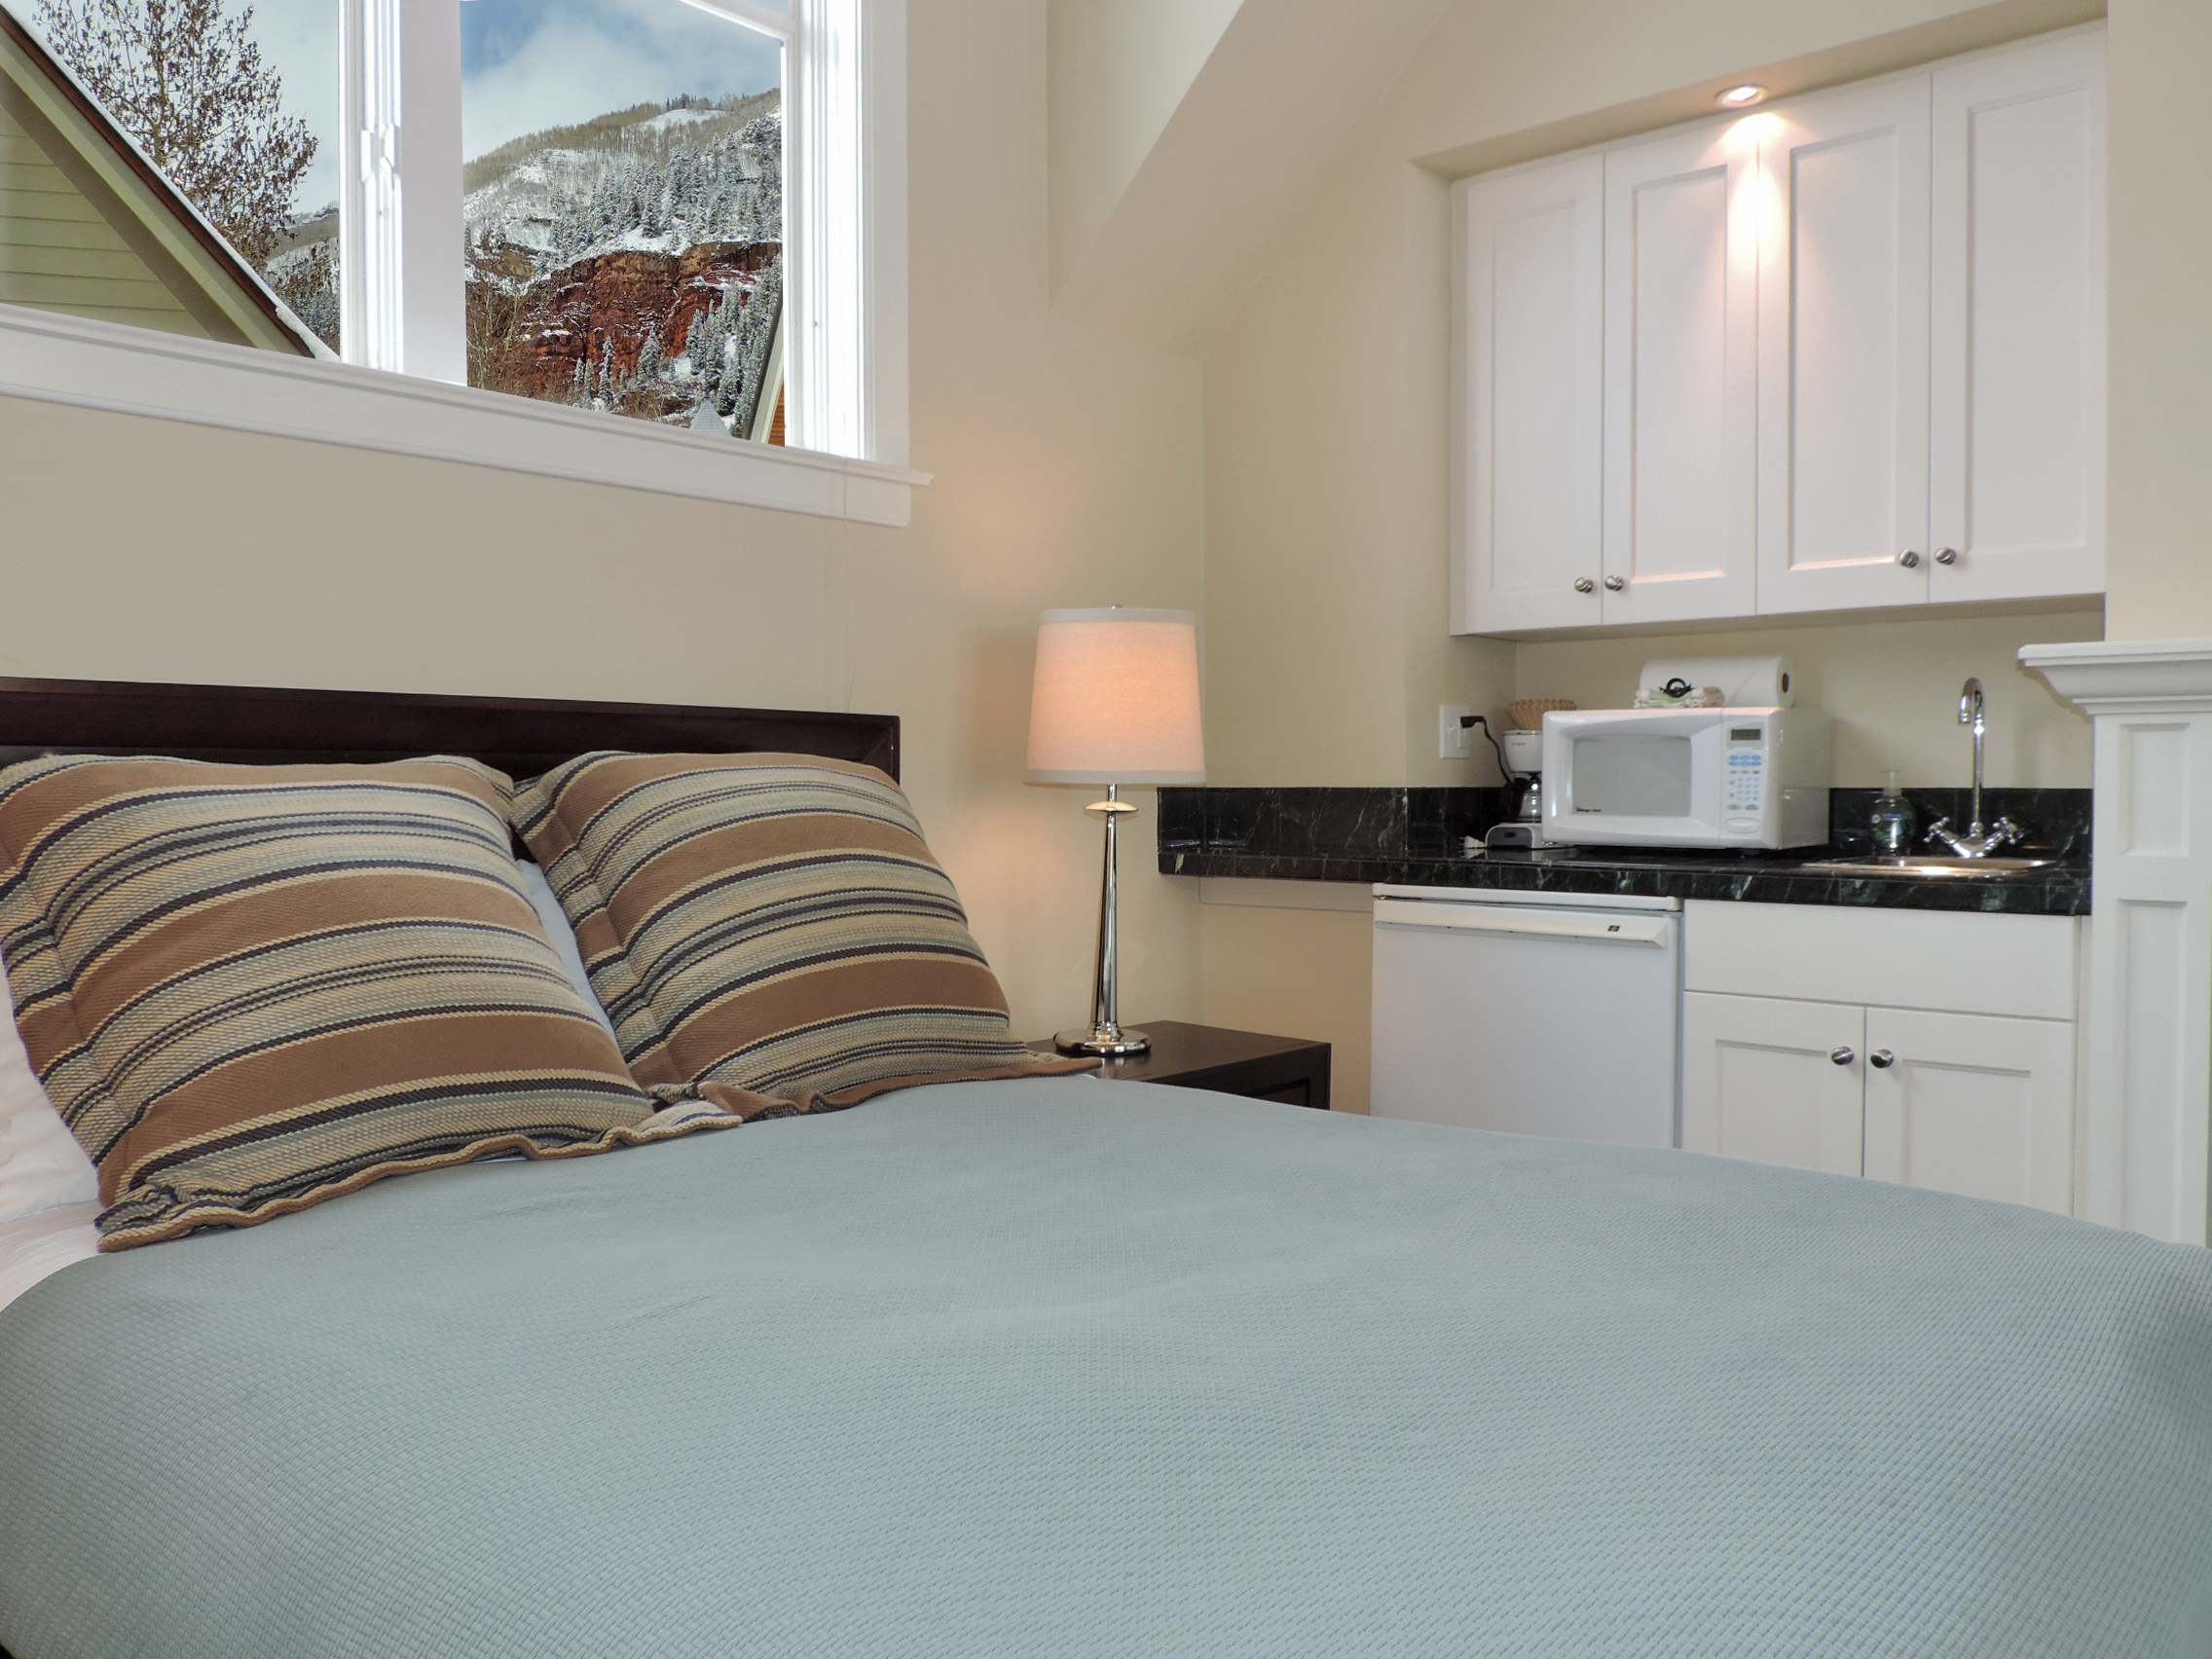 Montana Placer Inn - Room 5 - Queen Bed and Private Bath